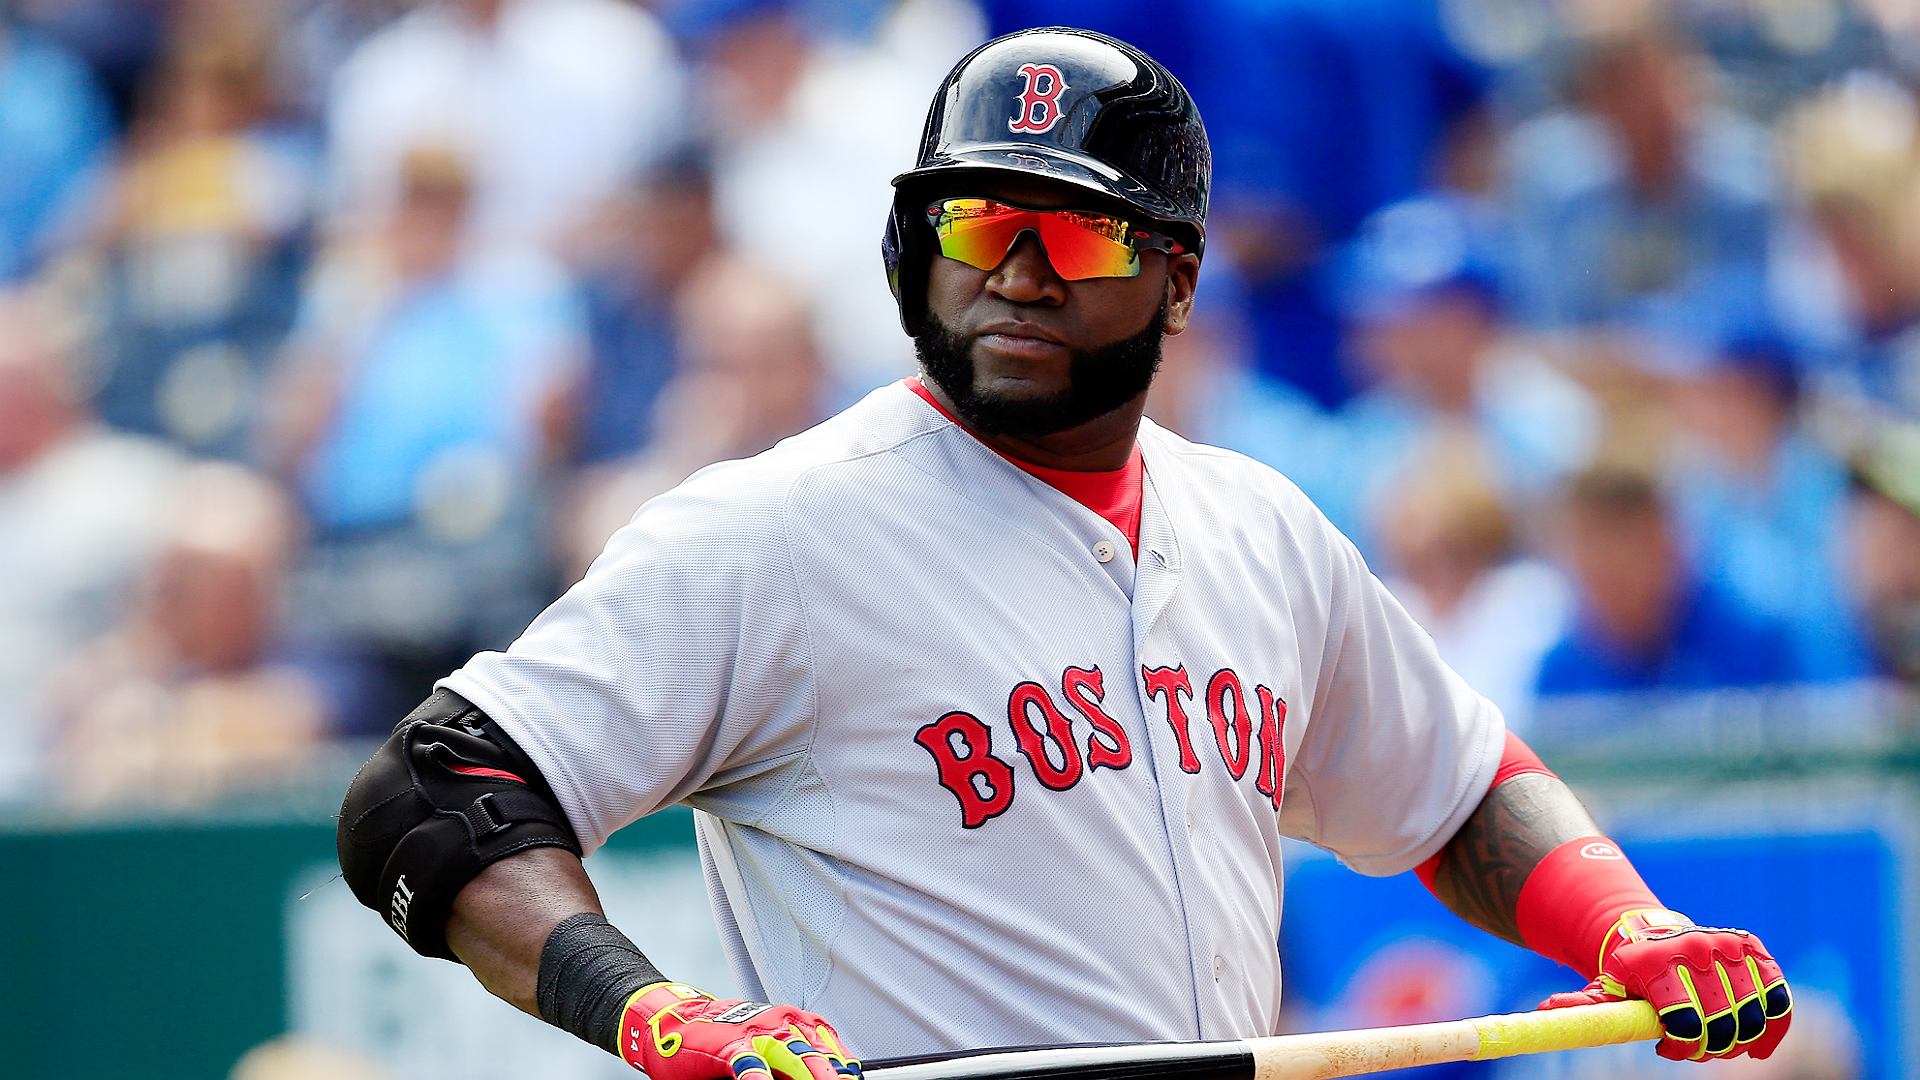 David-Ortiz-FTR-Getty-091414.jpg